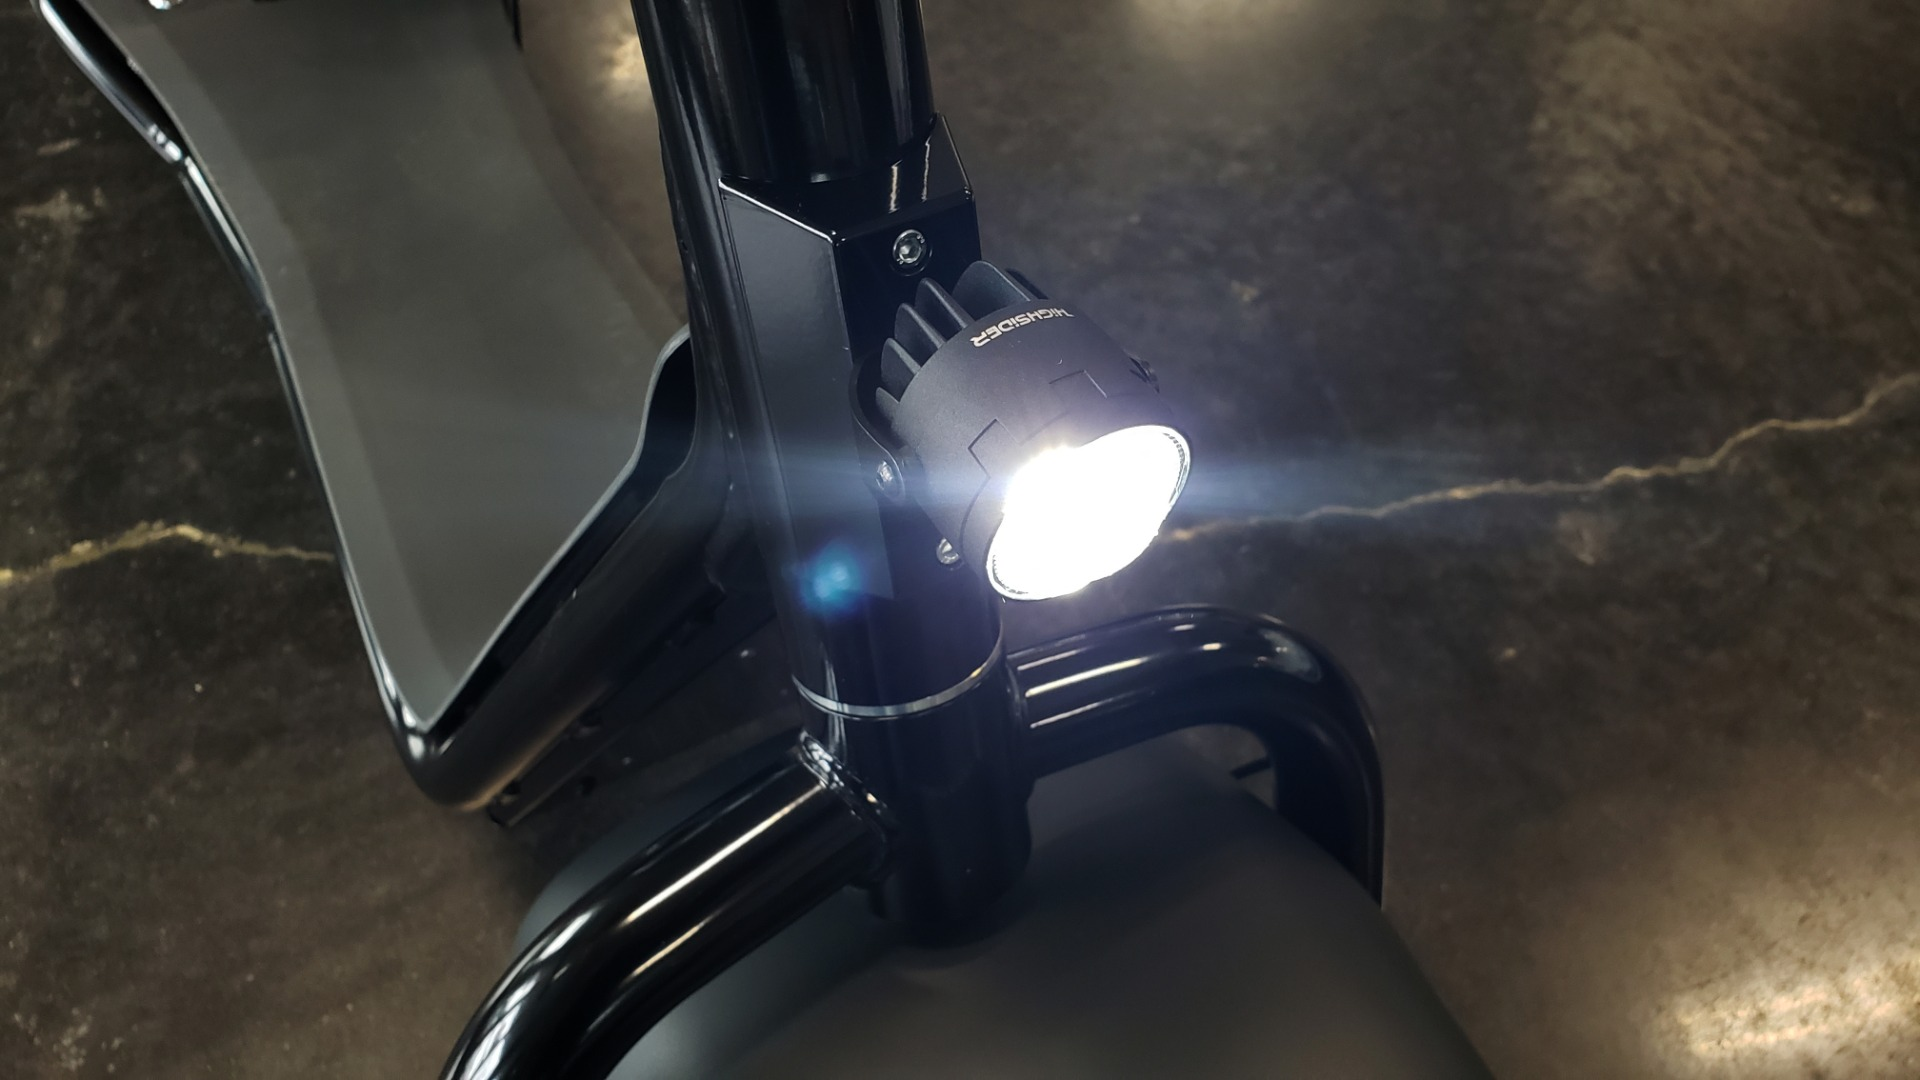 Used 2018 SCROOSER ELECTRIC SCOOTER SELF BALANCED / PITCH BLACK / 15.5 MPH / 34 MI RANGE for sale $1,699 at Formula Imports in Charlotte NC 28227 7